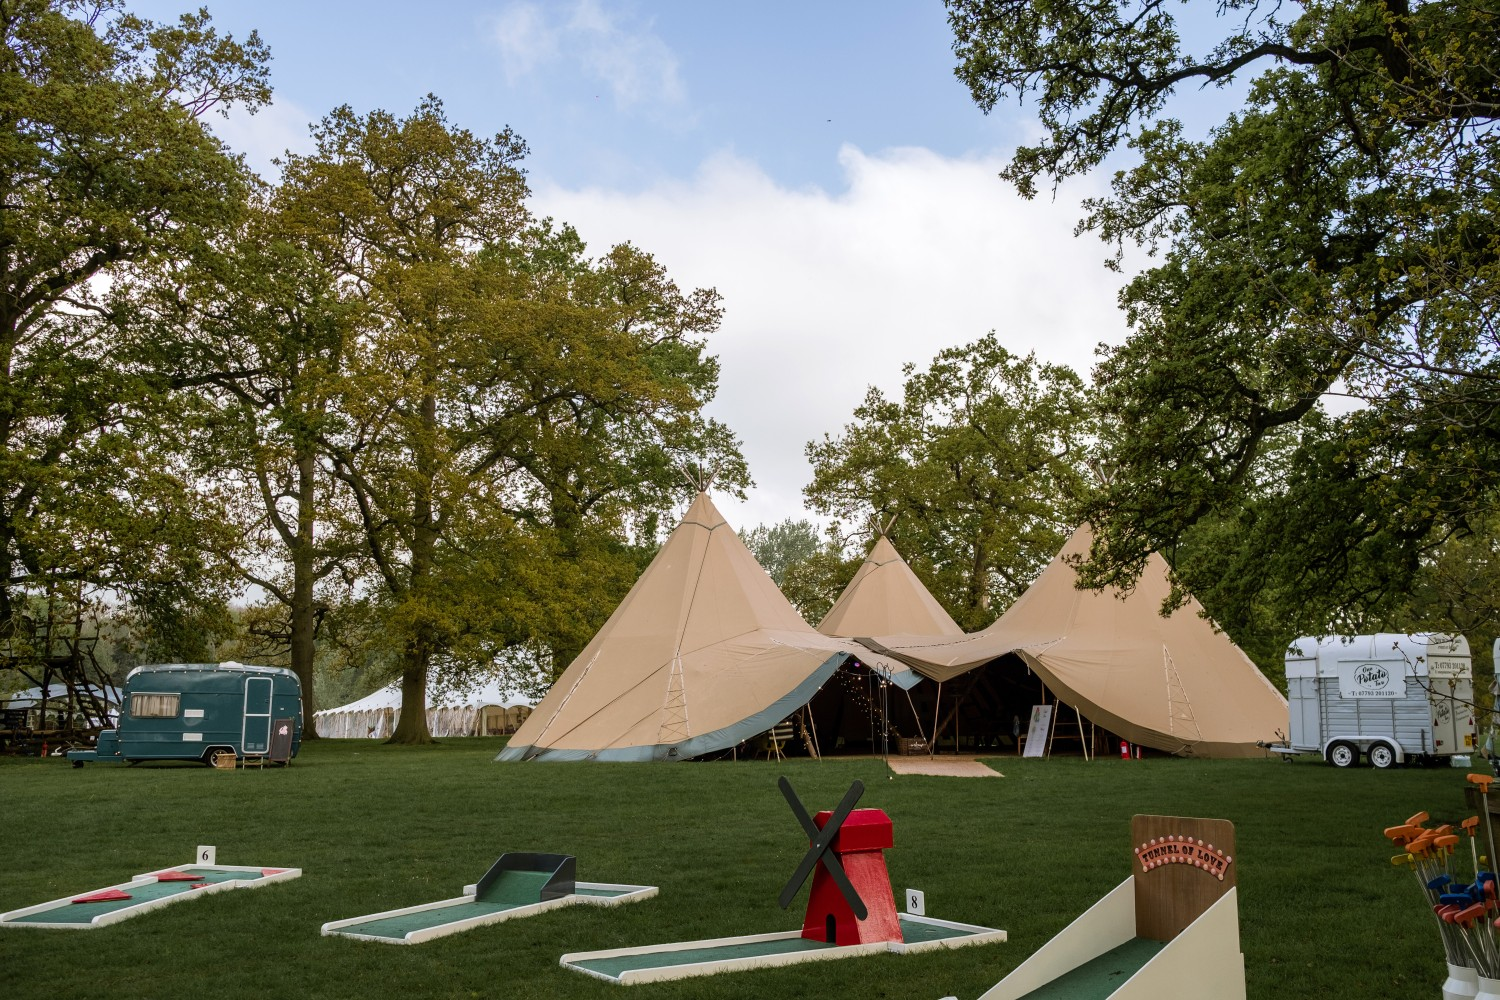 ed brown photography - how to plan a festival wedding - 9 hole event hire - mini golf - wedding entertainment - unconventional wedding festiv